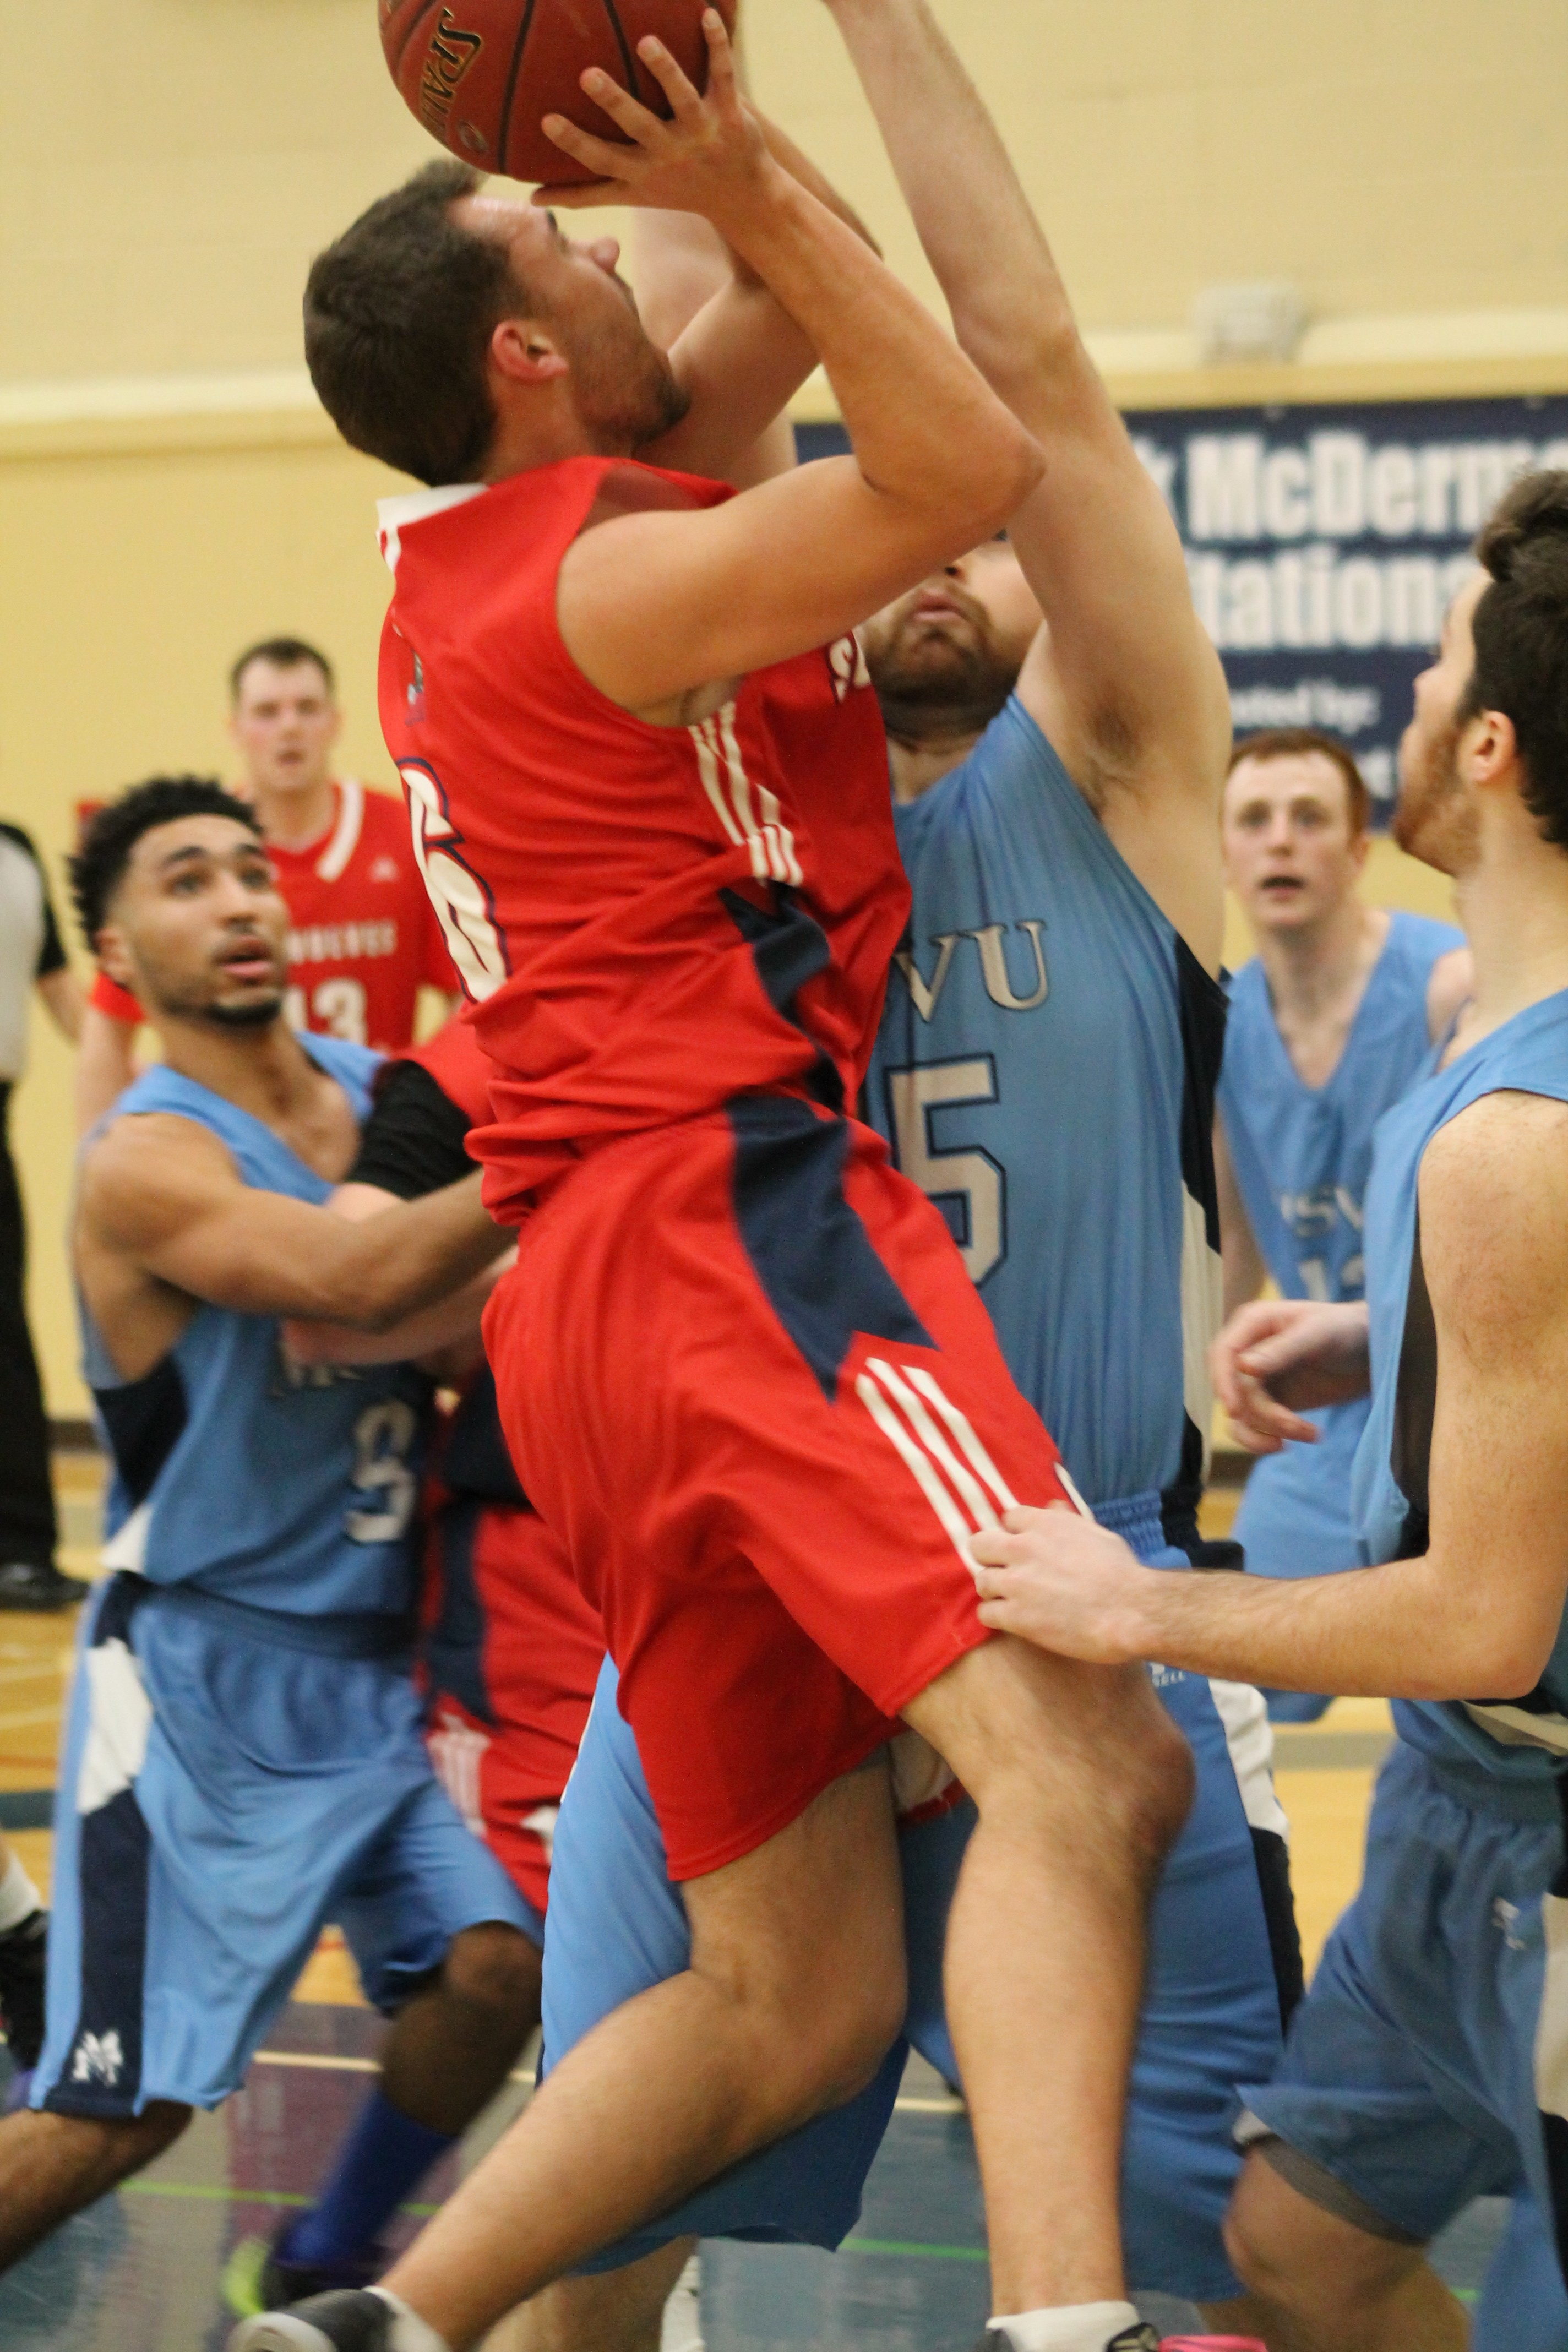 Nick Huggard pulls up for a shot against a tight Mystic defence.